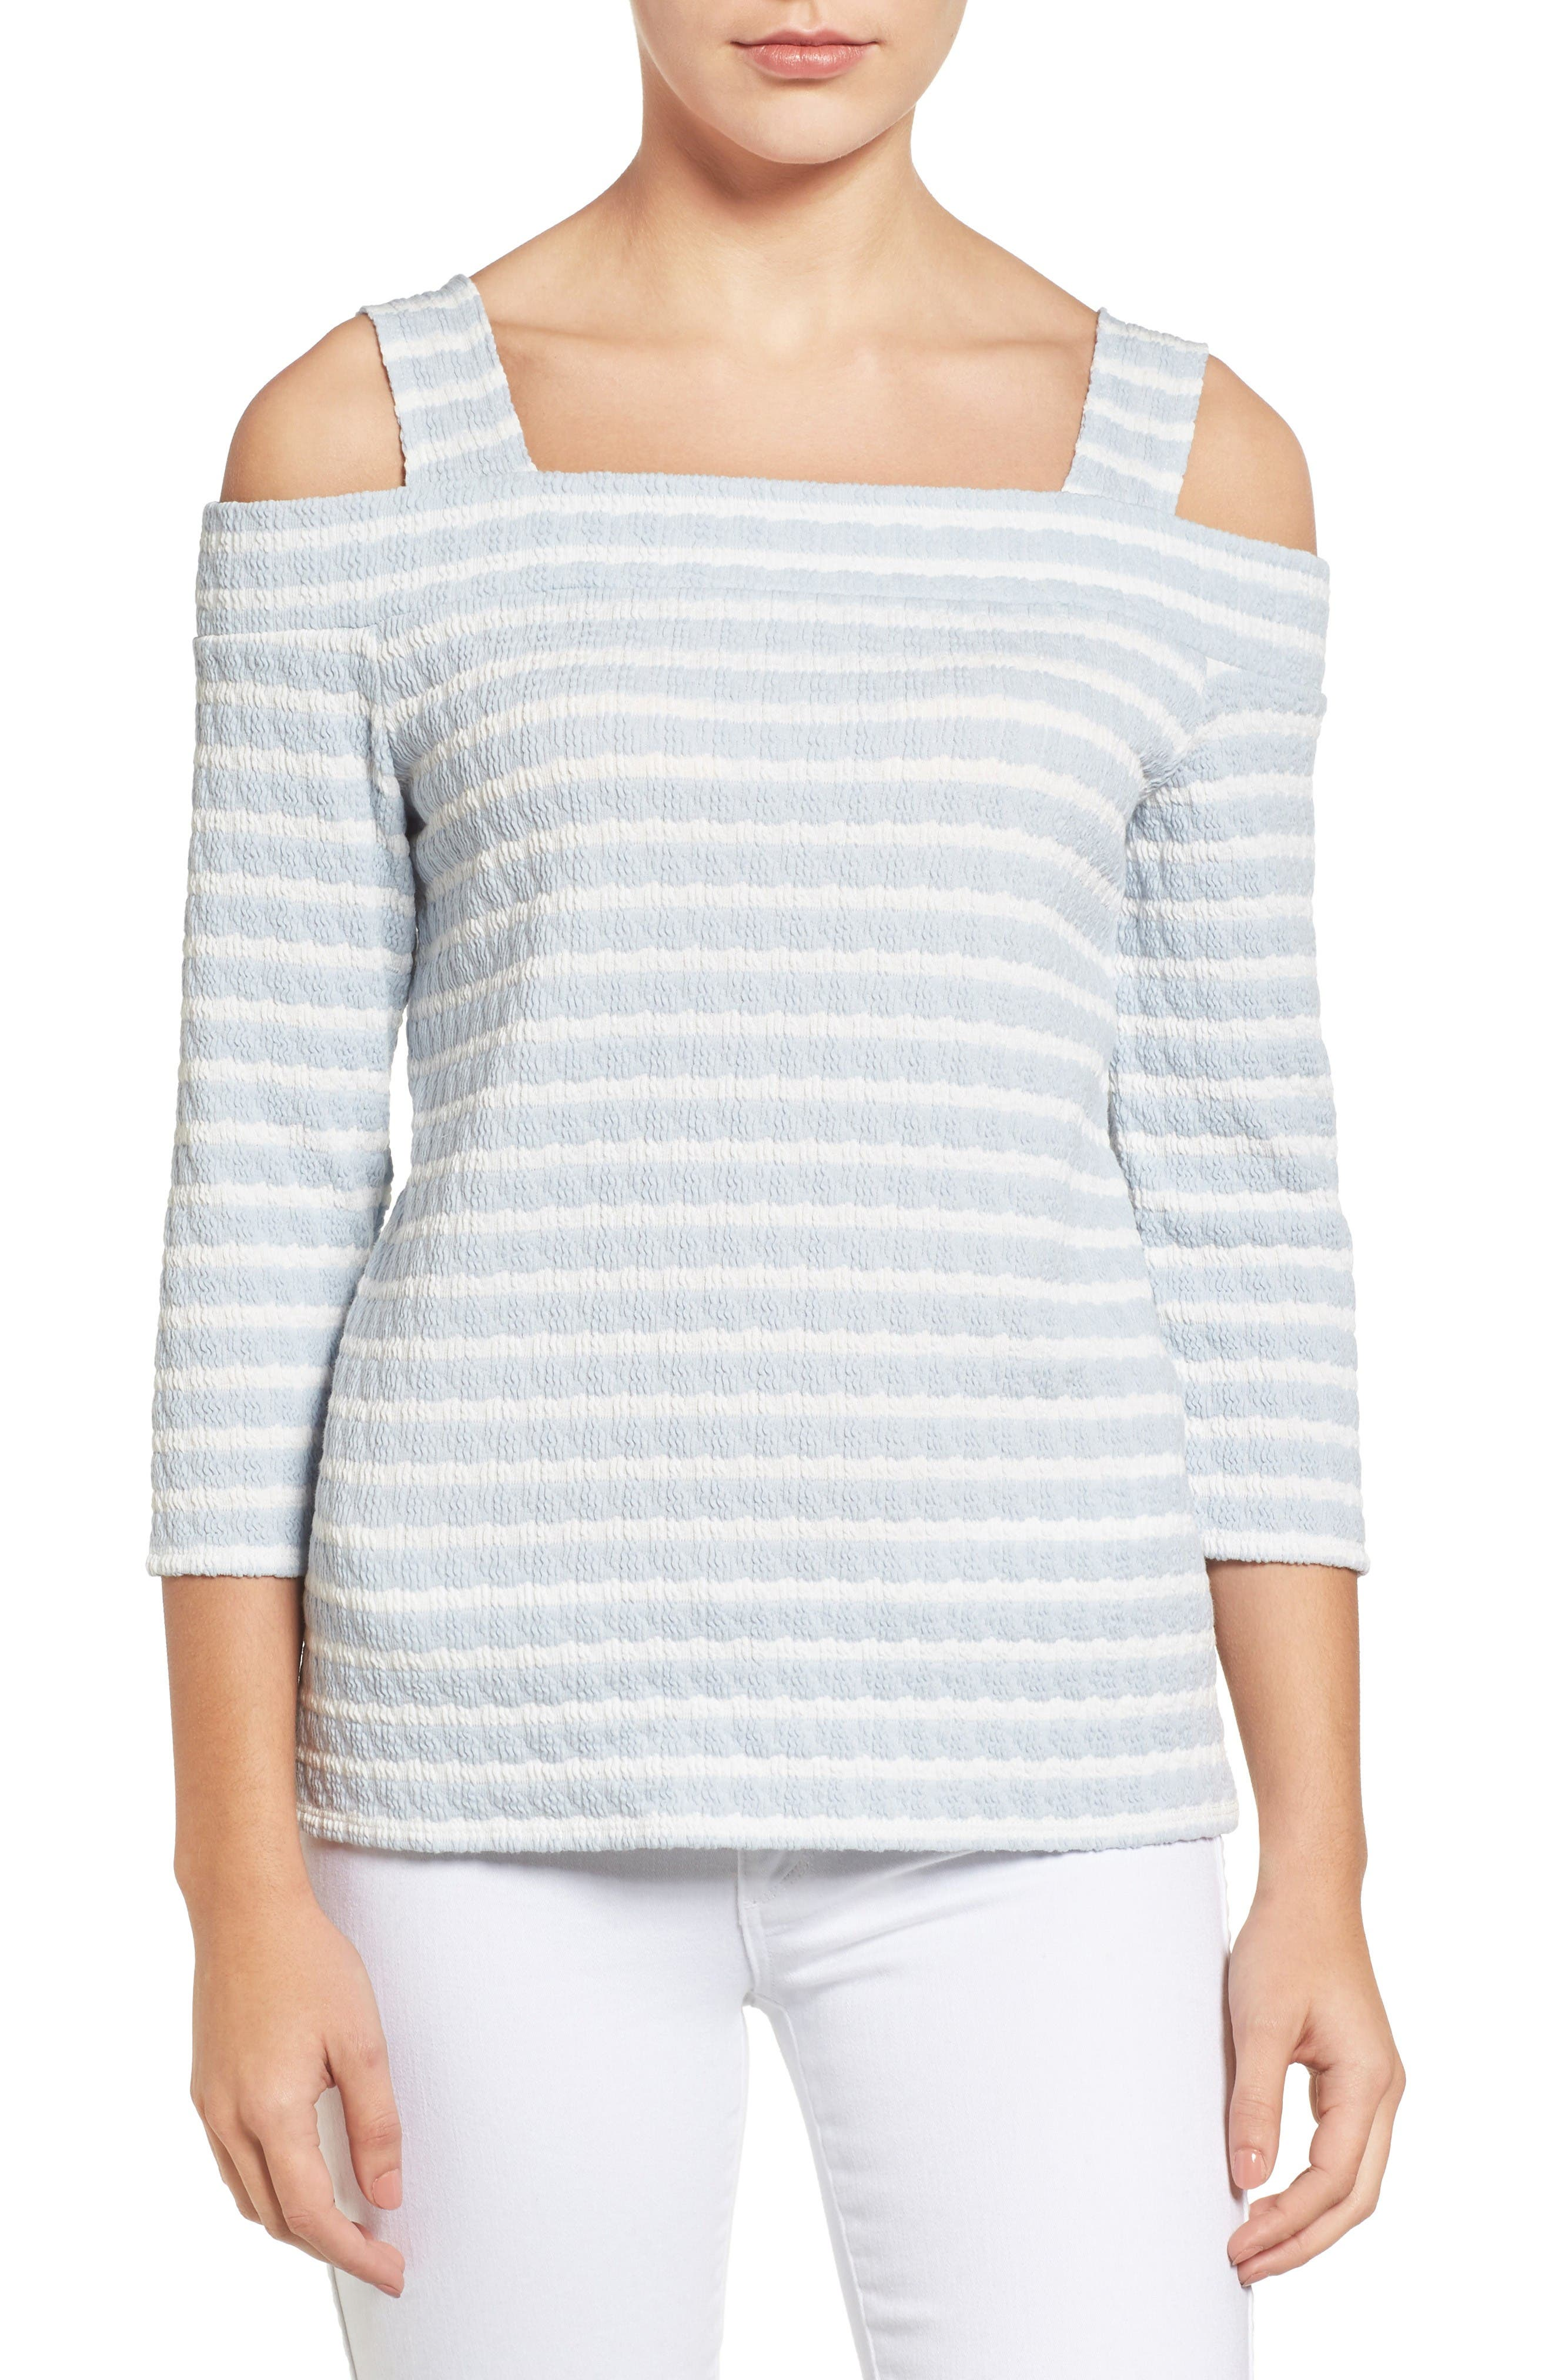 Main Image - KUT from the Kloth Fridi Texture Stripe Cold Shoulder Top